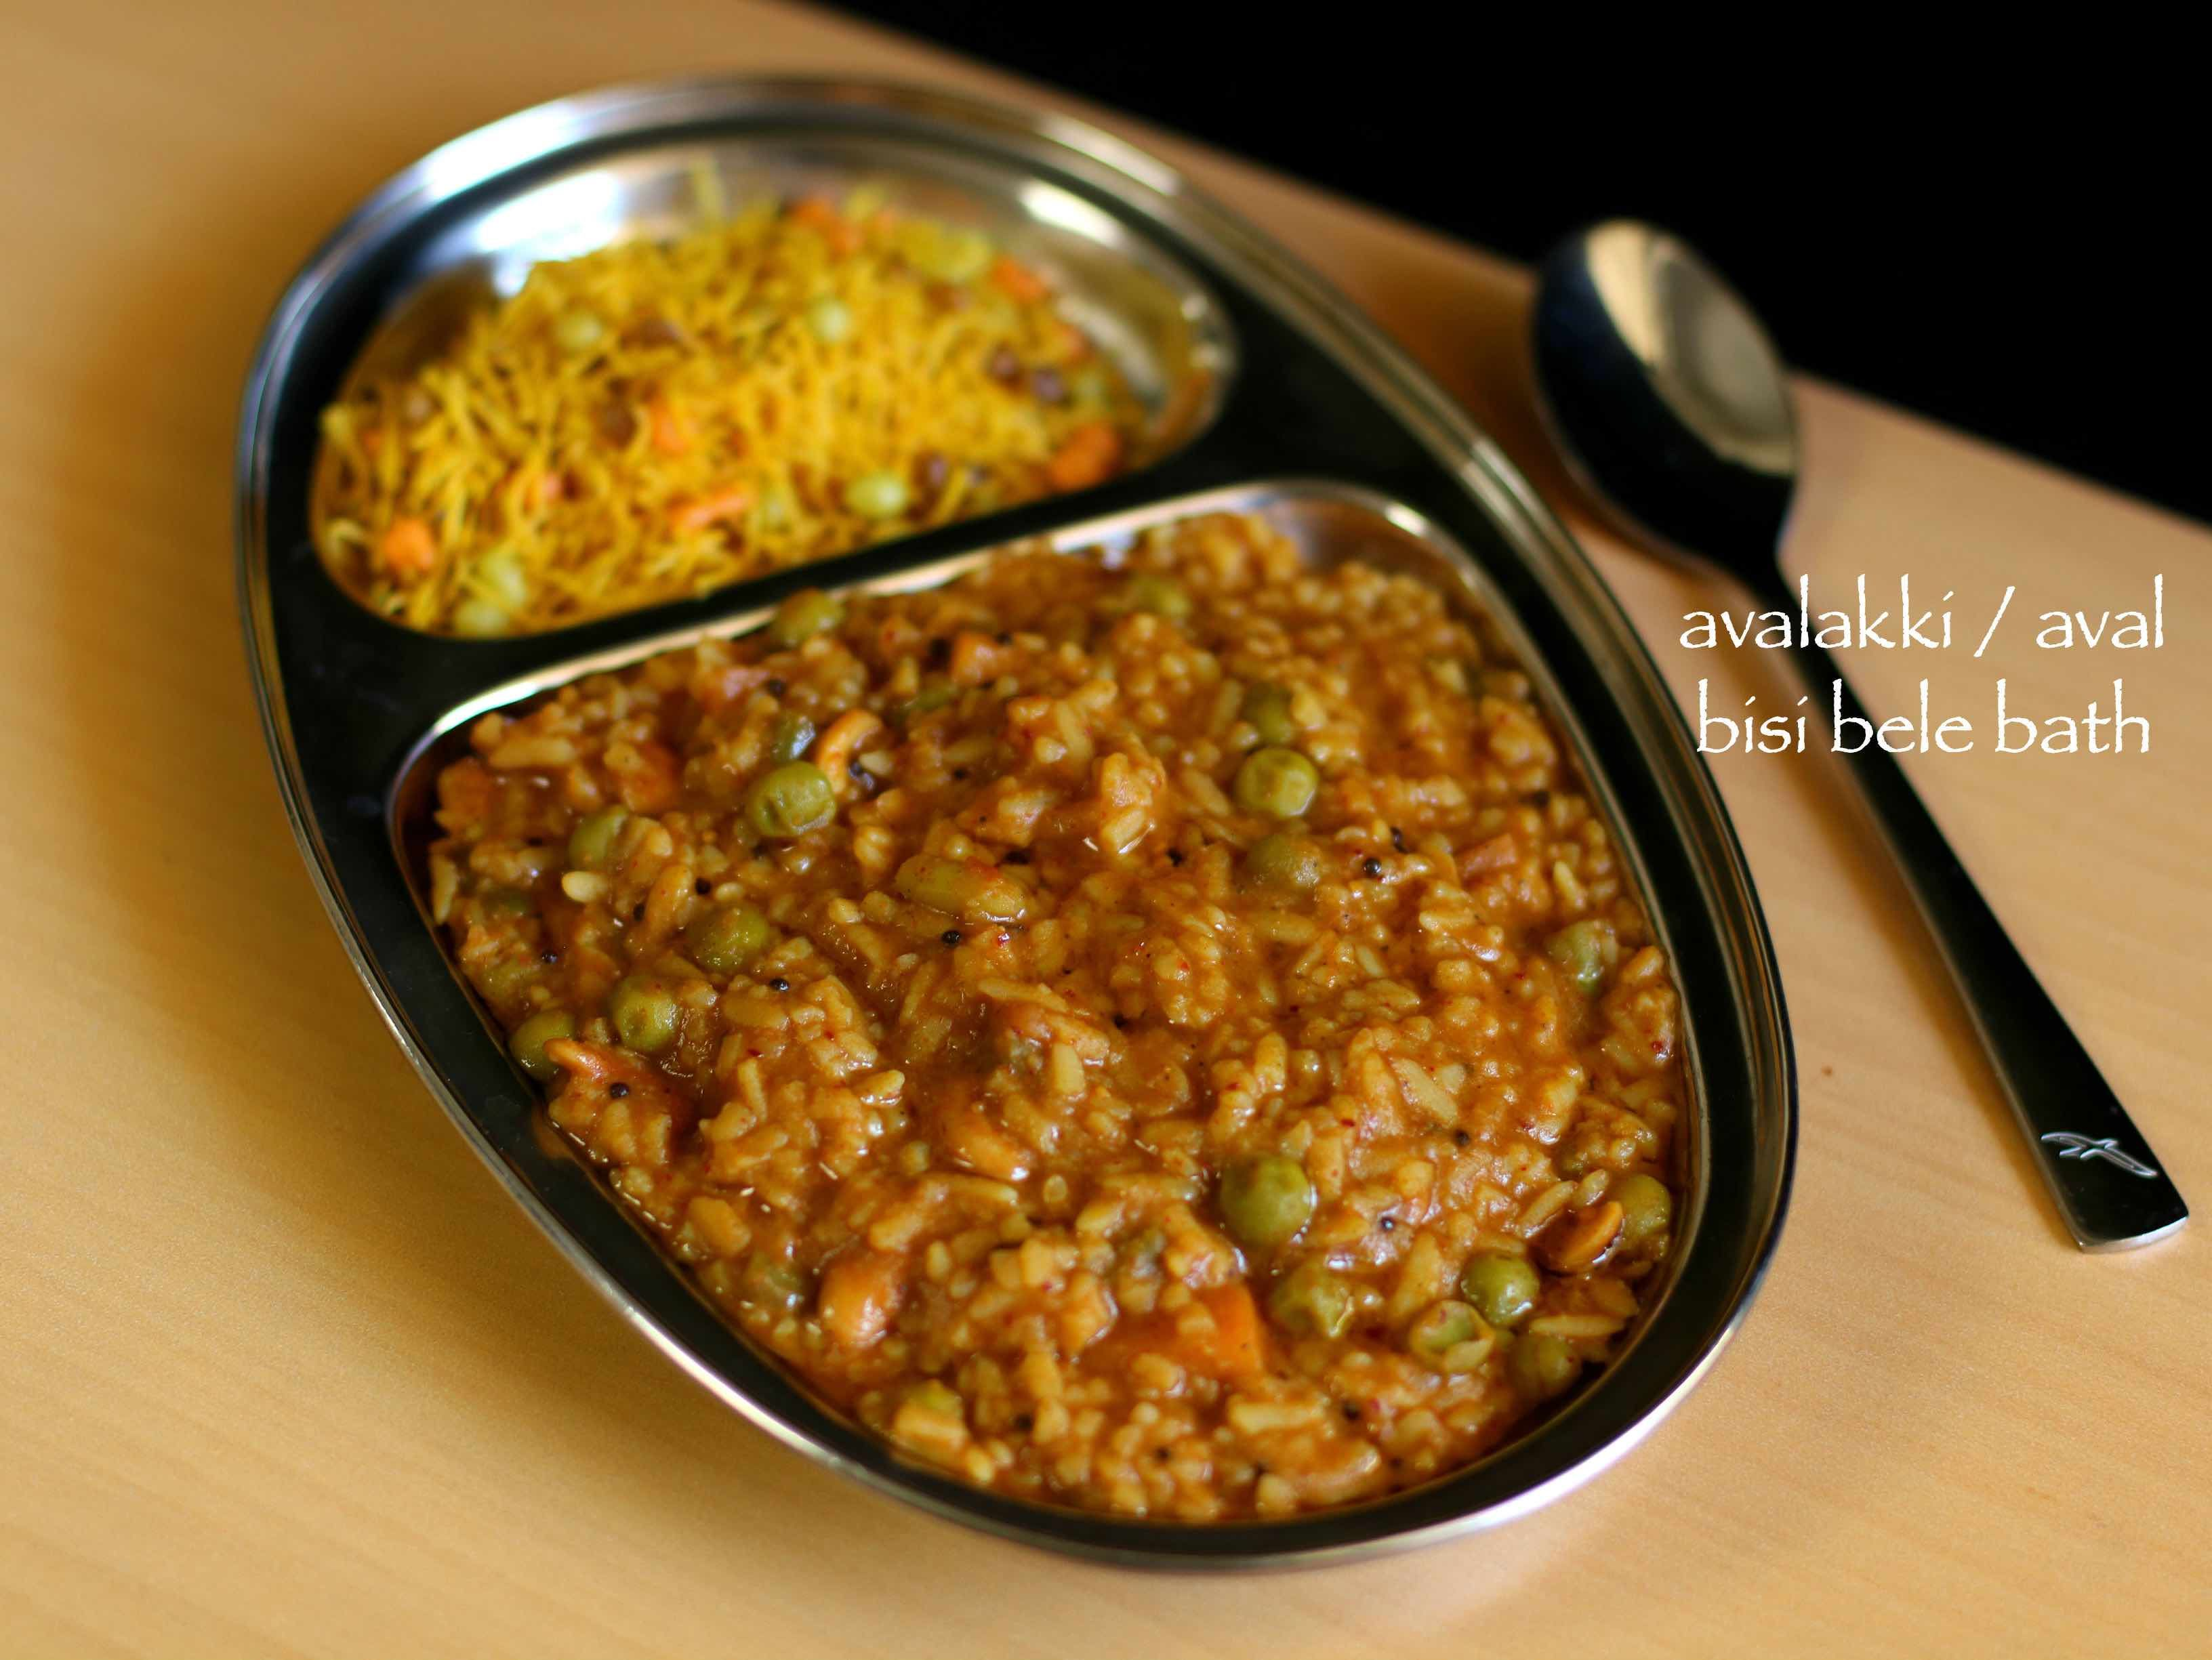 Avalakki bisi bele bath recipe aval bisi bele bath avalakki recipes for bengali sweet dish without fire on mytaste youll find 681 recipes for bengali sweet dish without fire as well as thousands of similar recipes forumfinder Choice Image